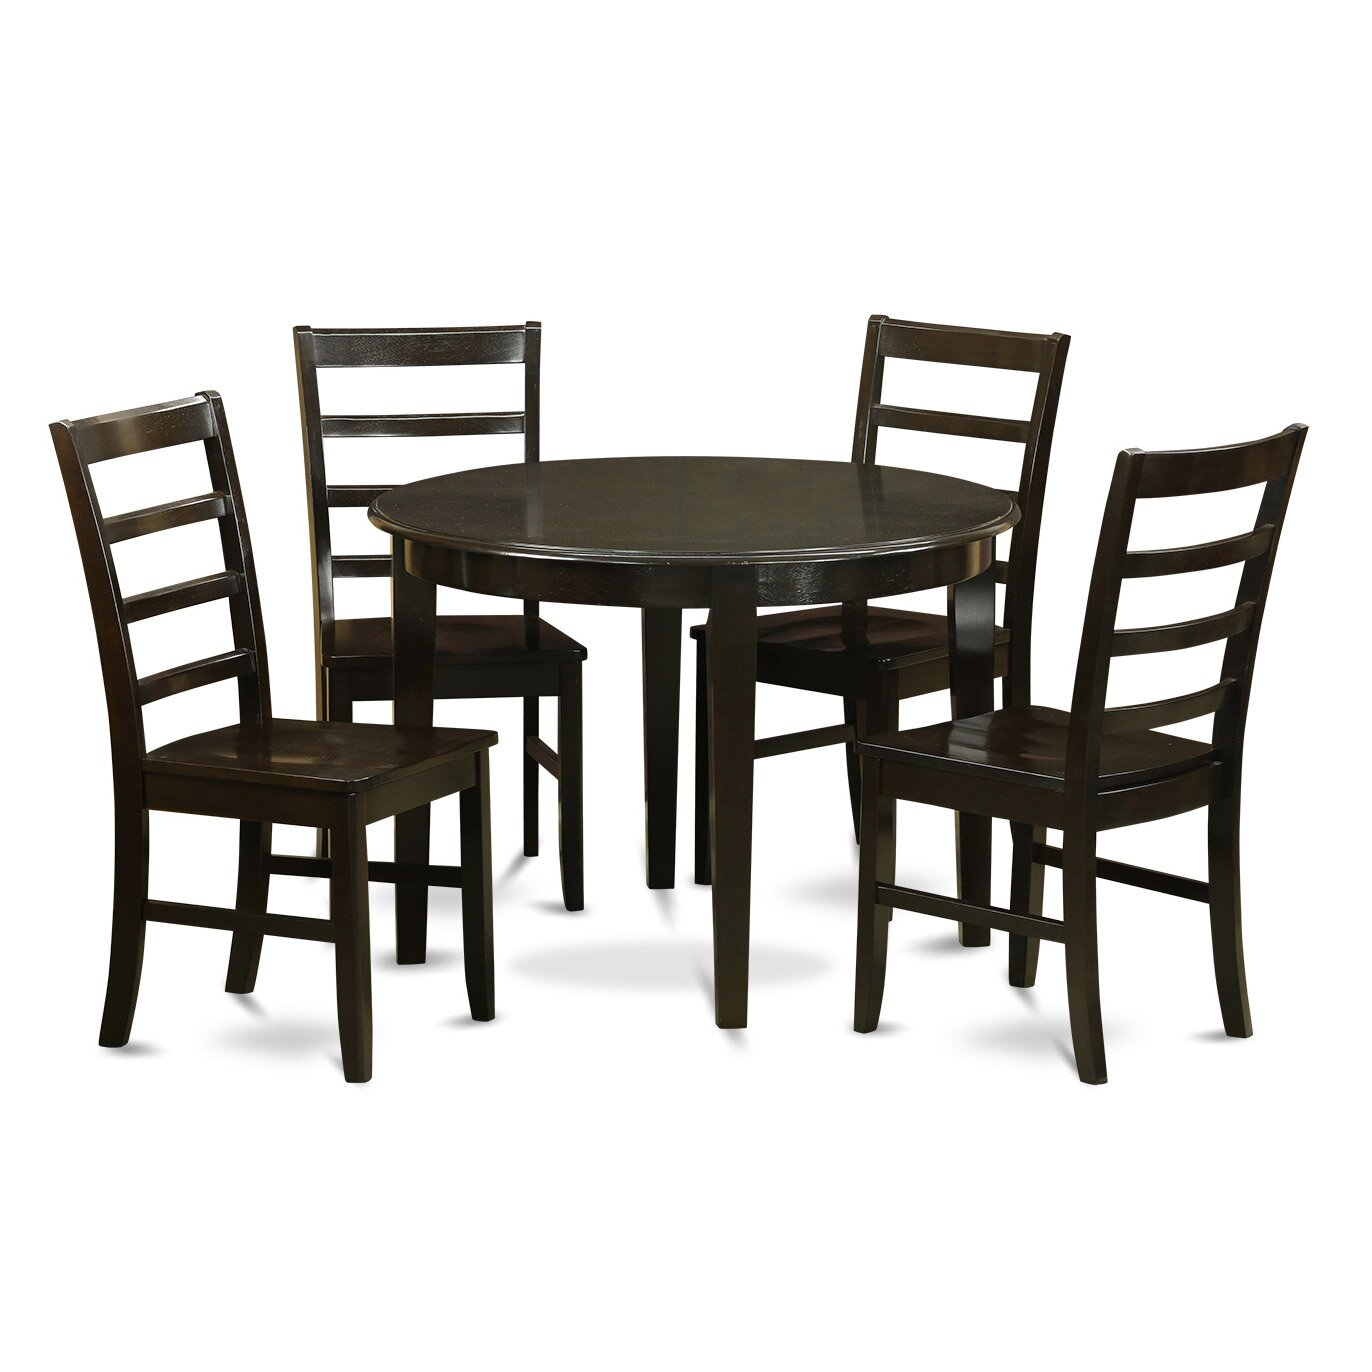 East west boston 5 piece dining set wayfair for Small table and 4 chair set